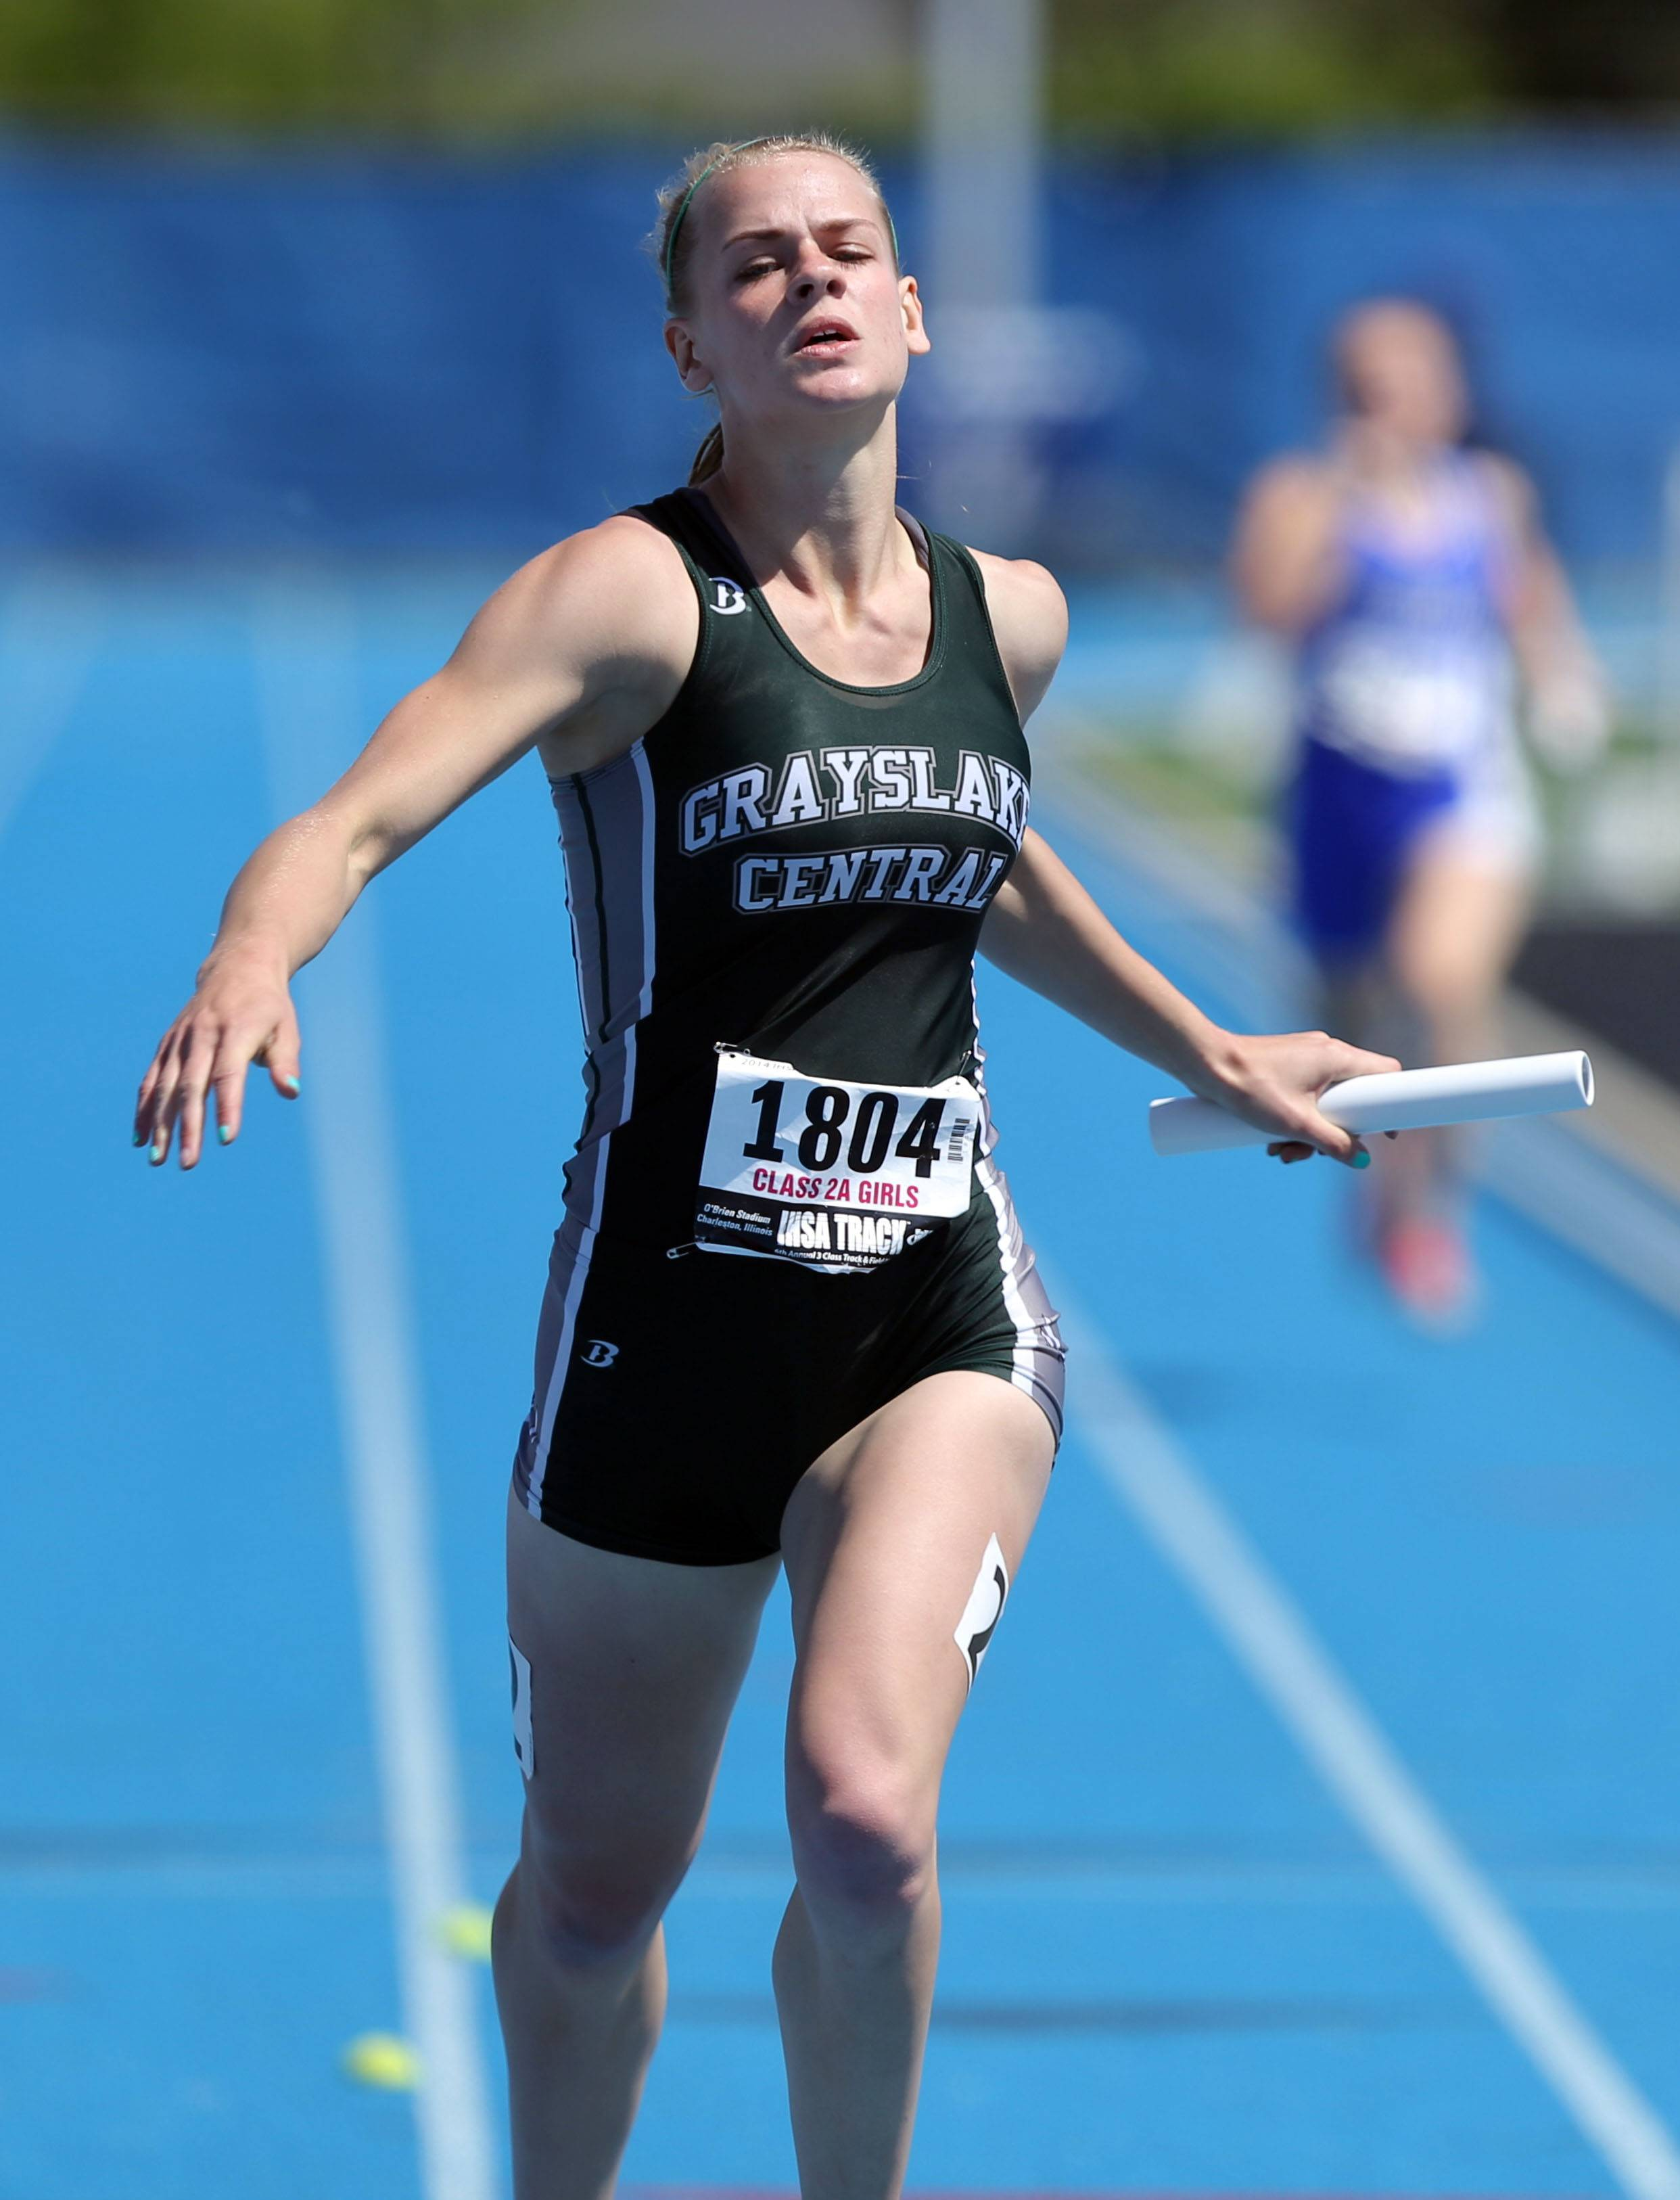 Steve Lundy/slundy@dailyherald.comGrayslake Central's Leah Kloss  crosses the finish line in the 4x200-meter relay during the prelims of the girls track and field state meet at Eastern Illinois University in Charleston Friday.